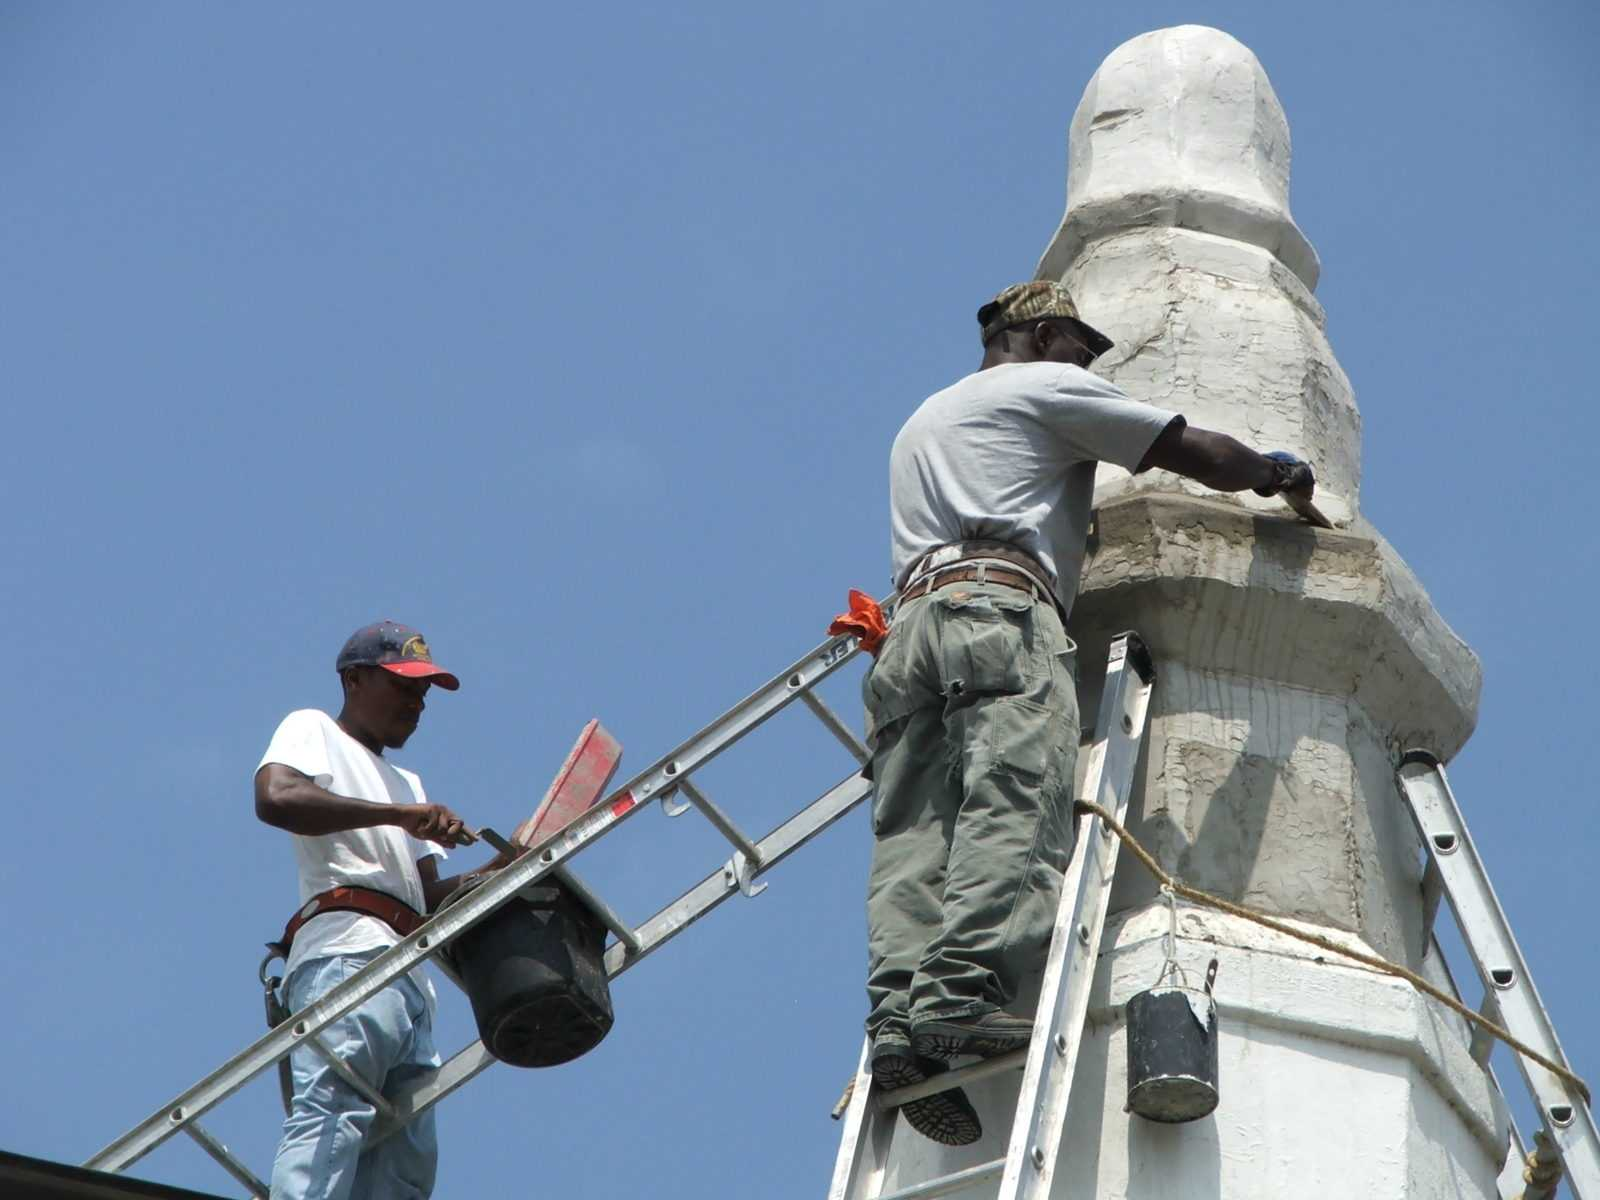 Stucco Finial Repair